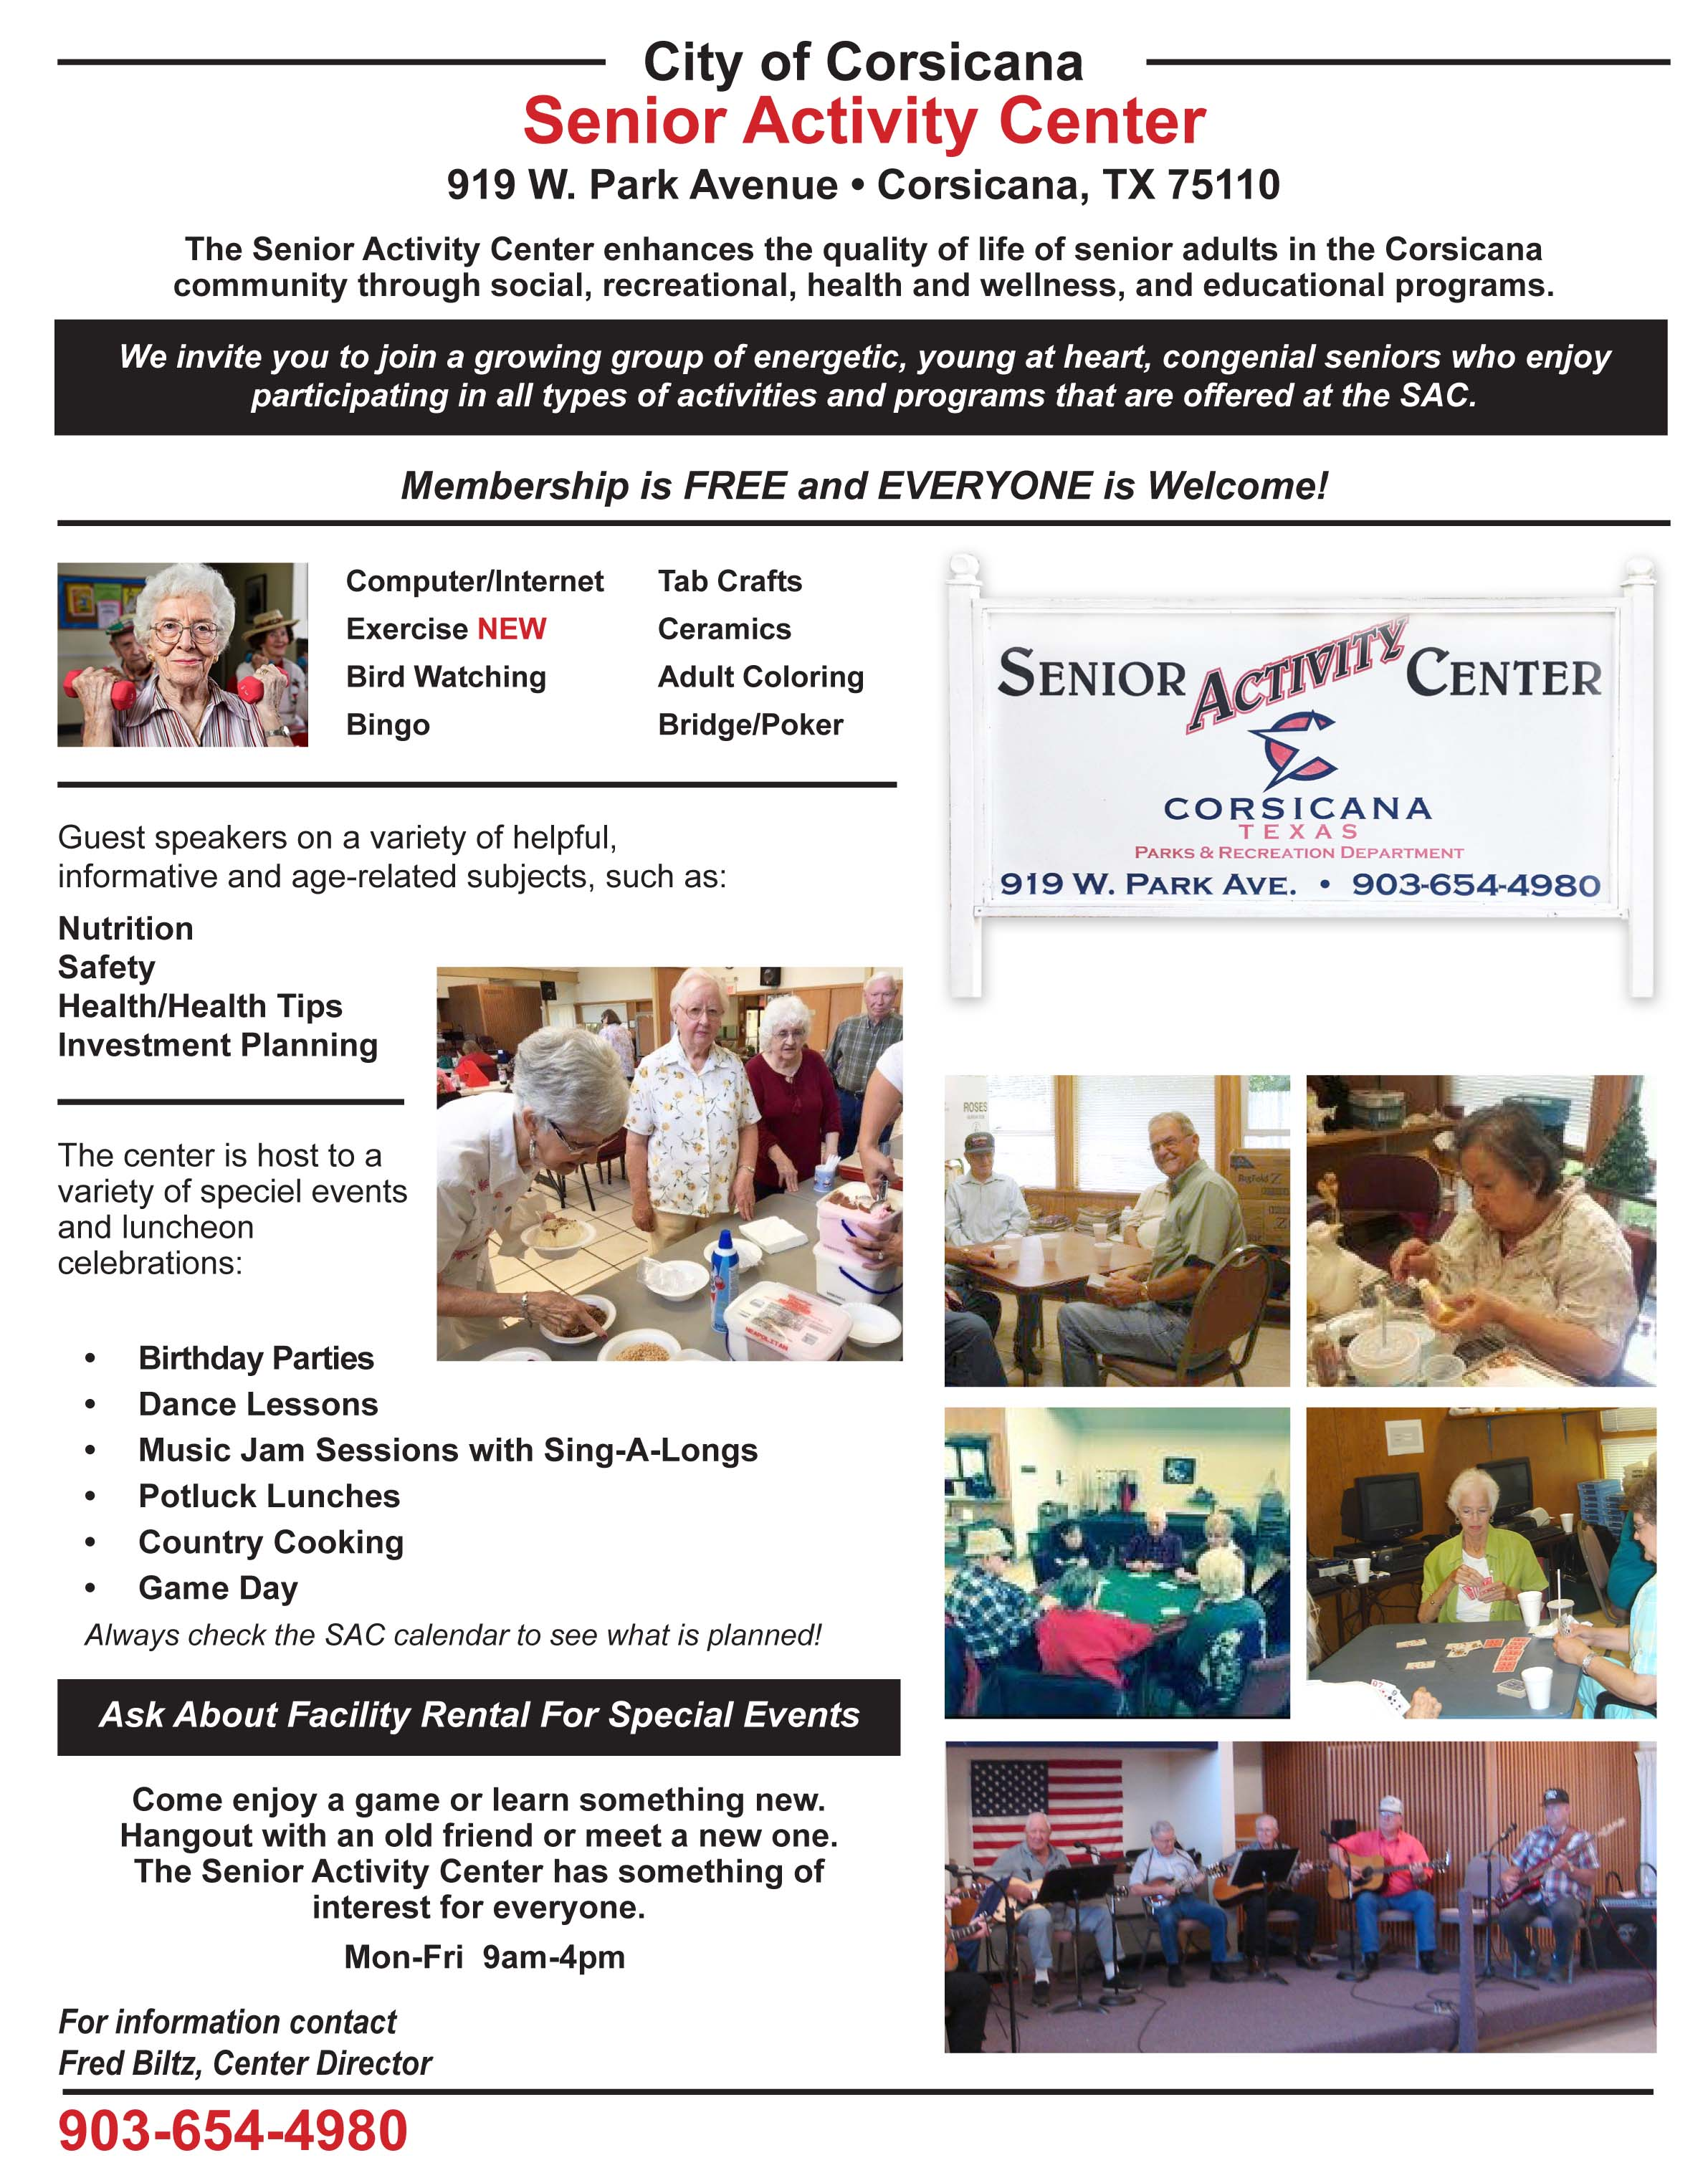 Senior Activity Center Website Information